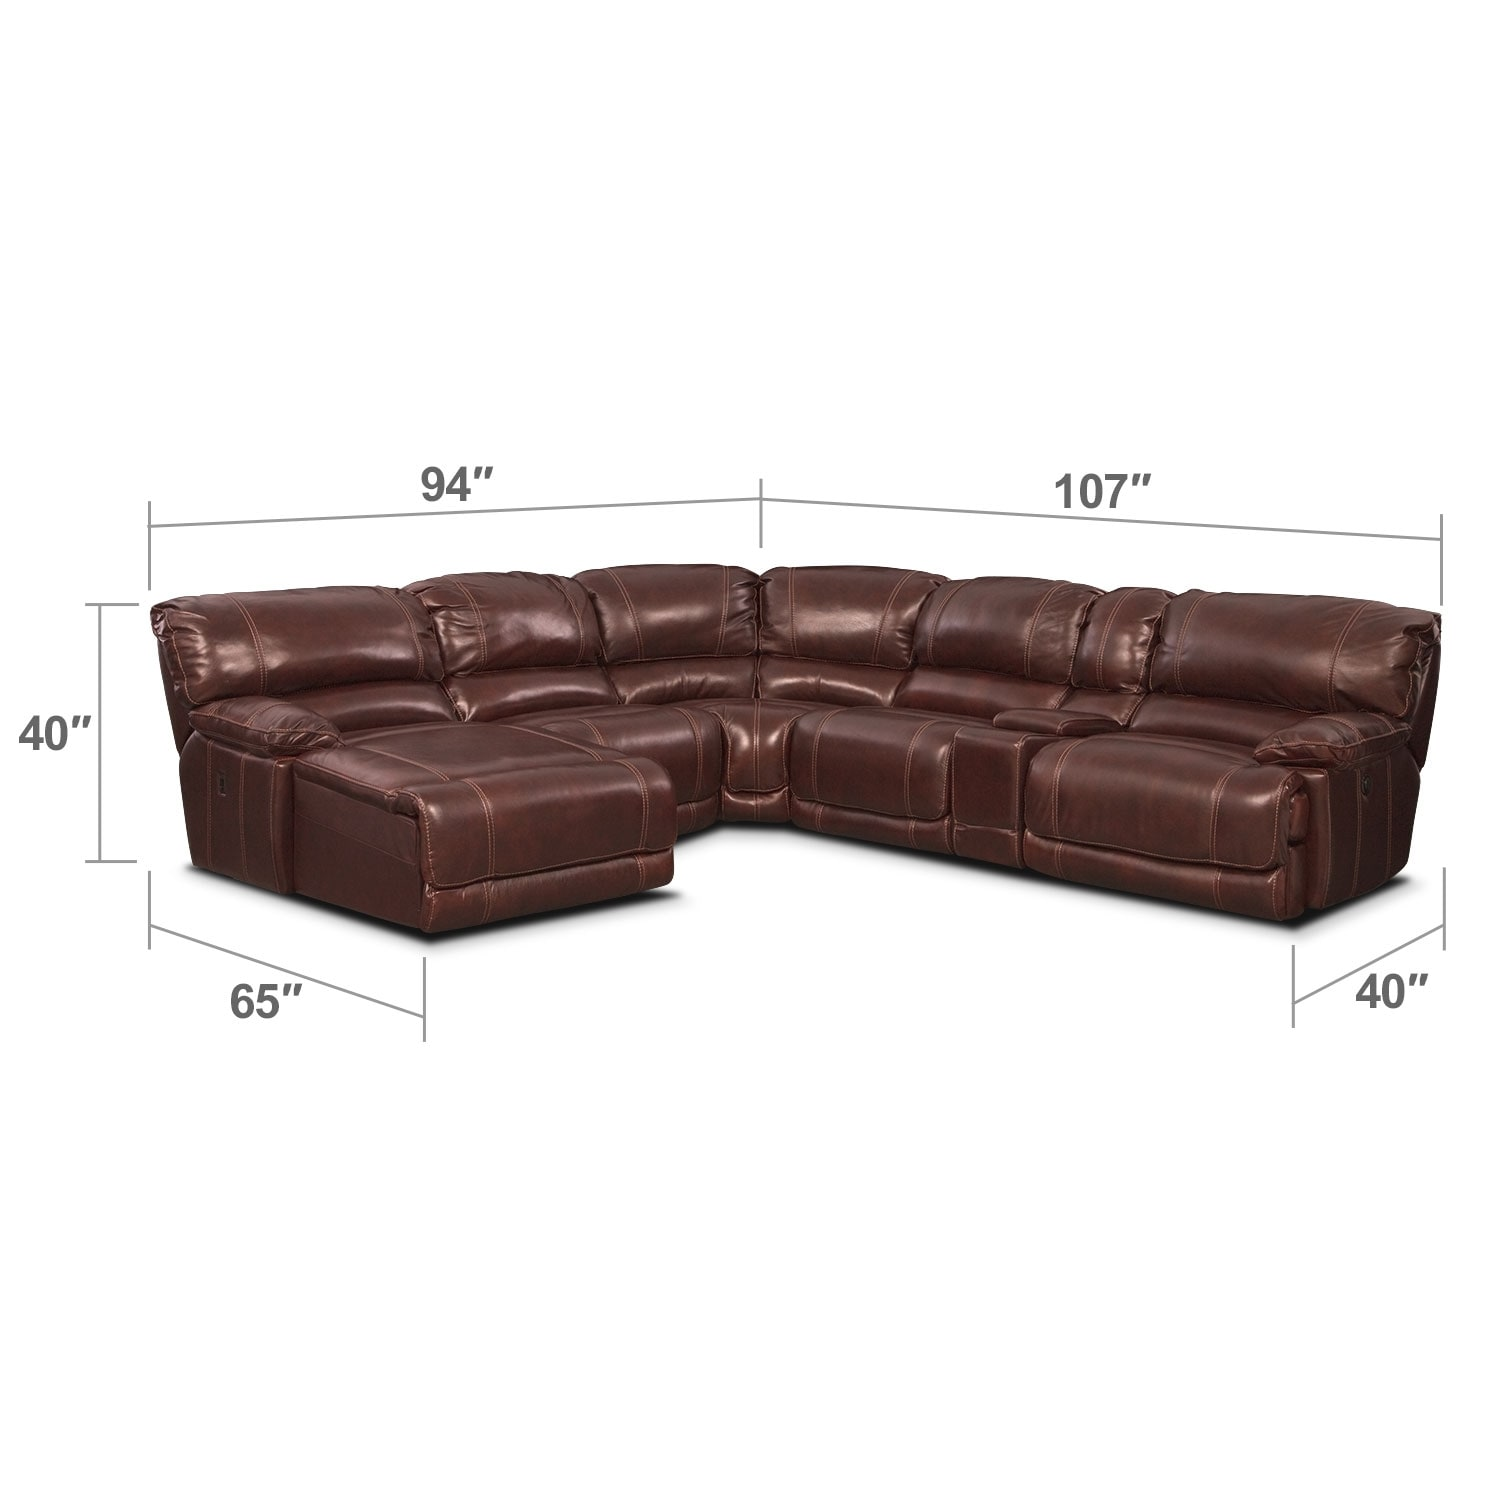 Living Room Furniture - St. Malo III 6 Pc. Power Reclining Sectional (Reverse)